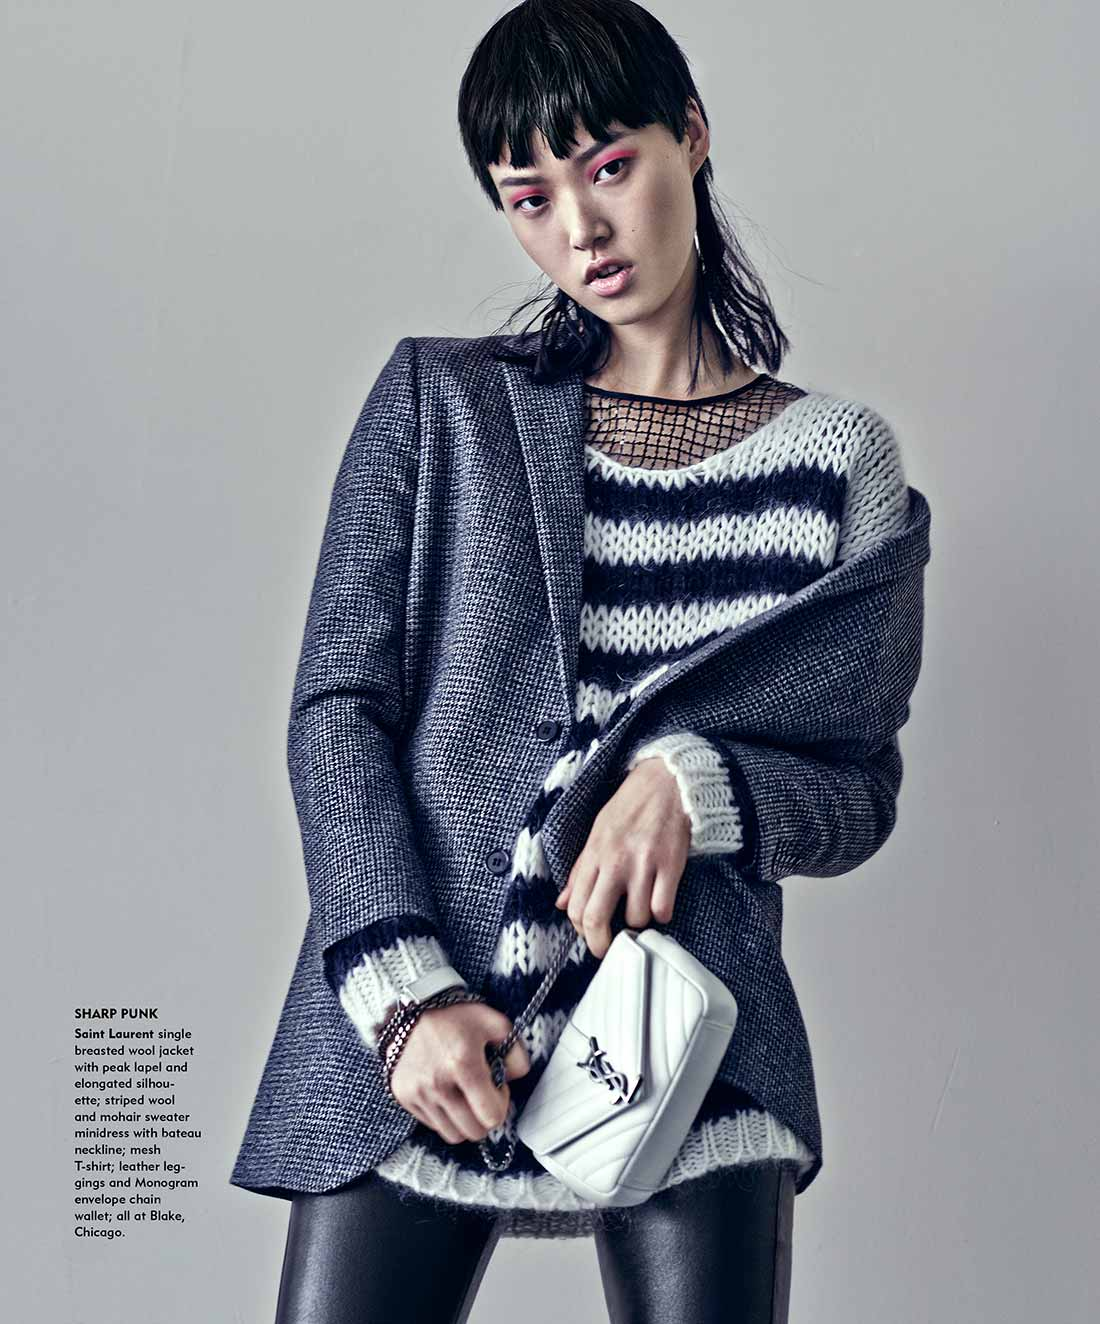 TRIBUNE FALL FASHION COVER 2015- PHOTOGRAPHED BY KEVIN SINCLAIRE STYLED BY TWOMUCHSTYLE